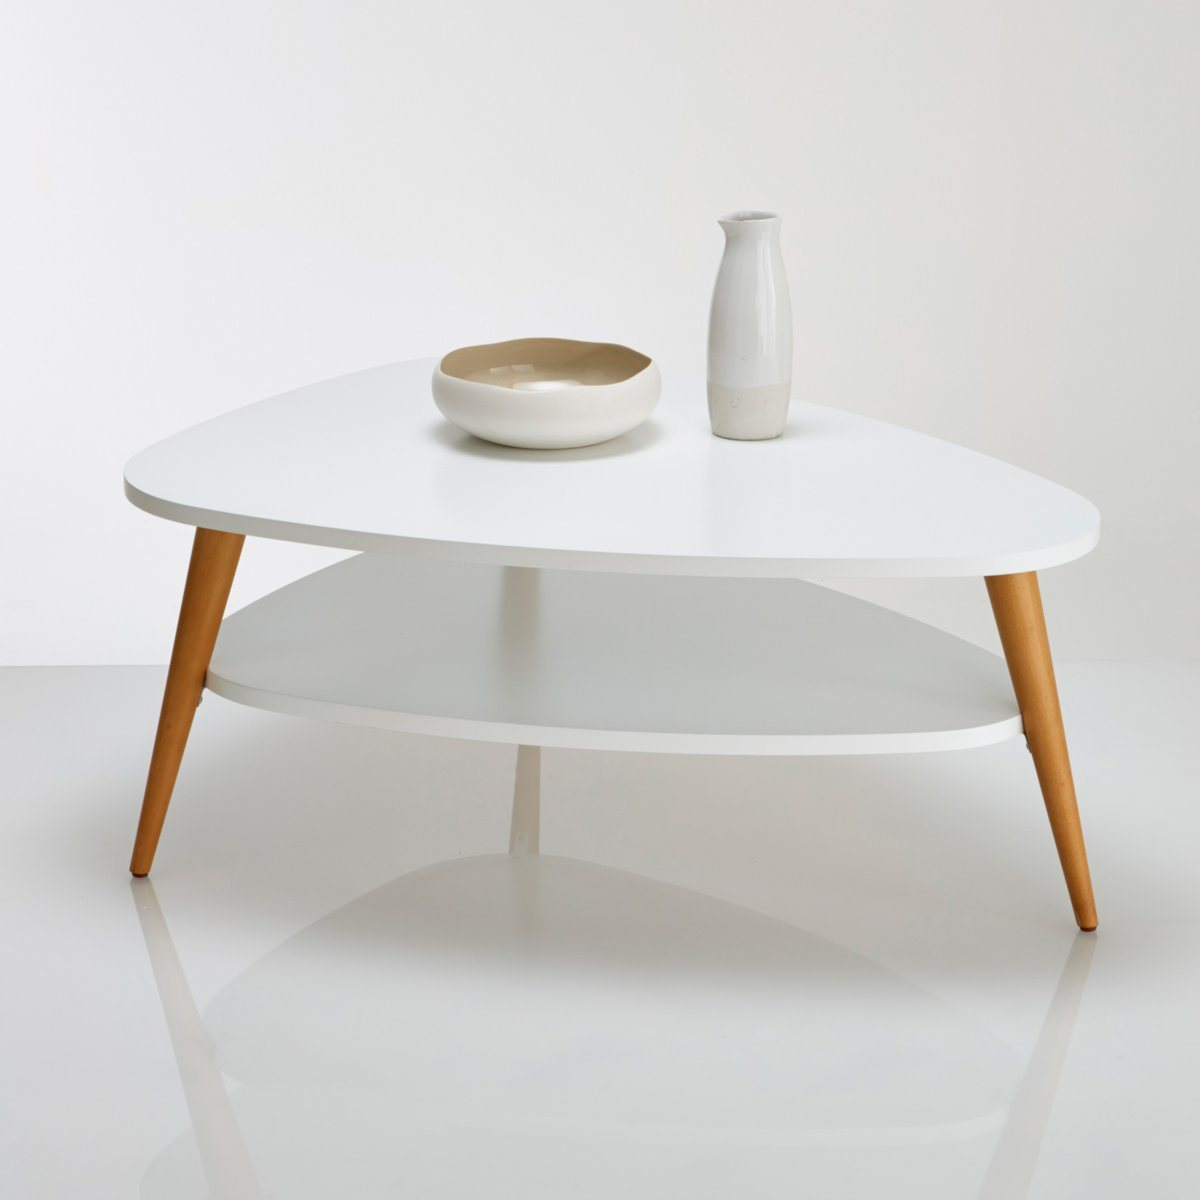 La table basse parfaite pour votre salon rise and shine for Table la redoute